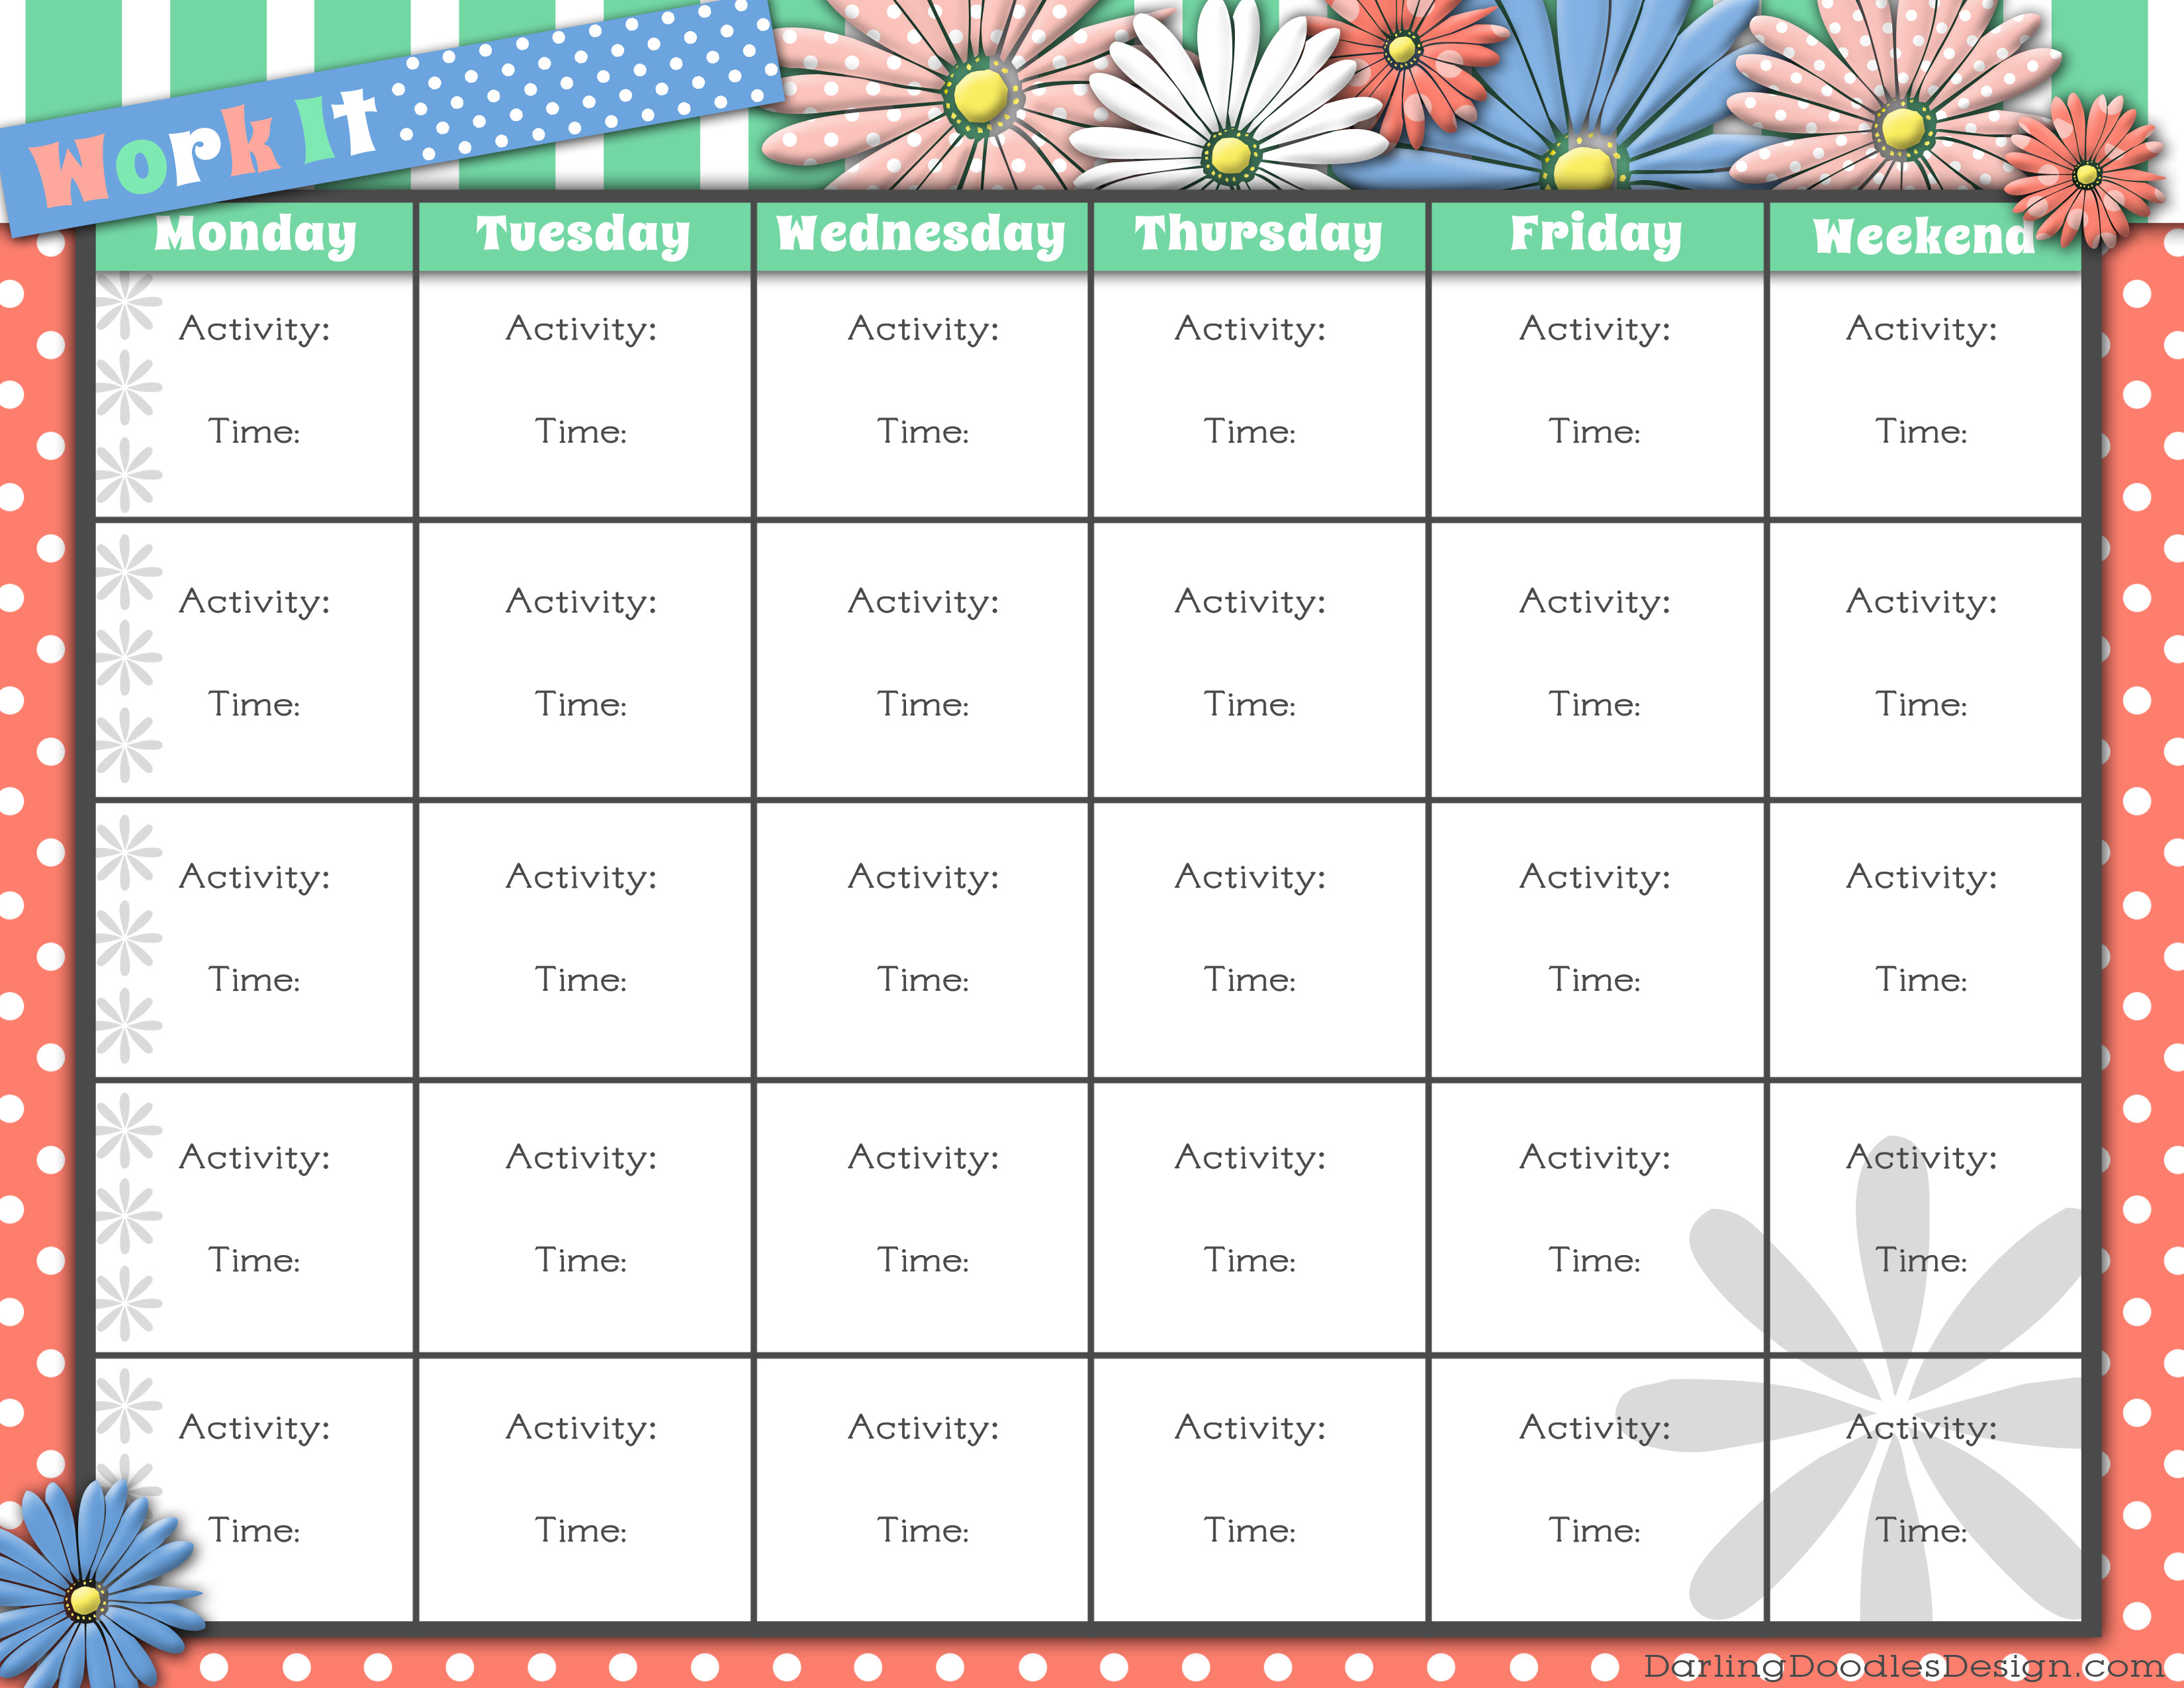 7 Best Images of Printable Workout Sheets Free Printable Workout – Printable Workout Sheet